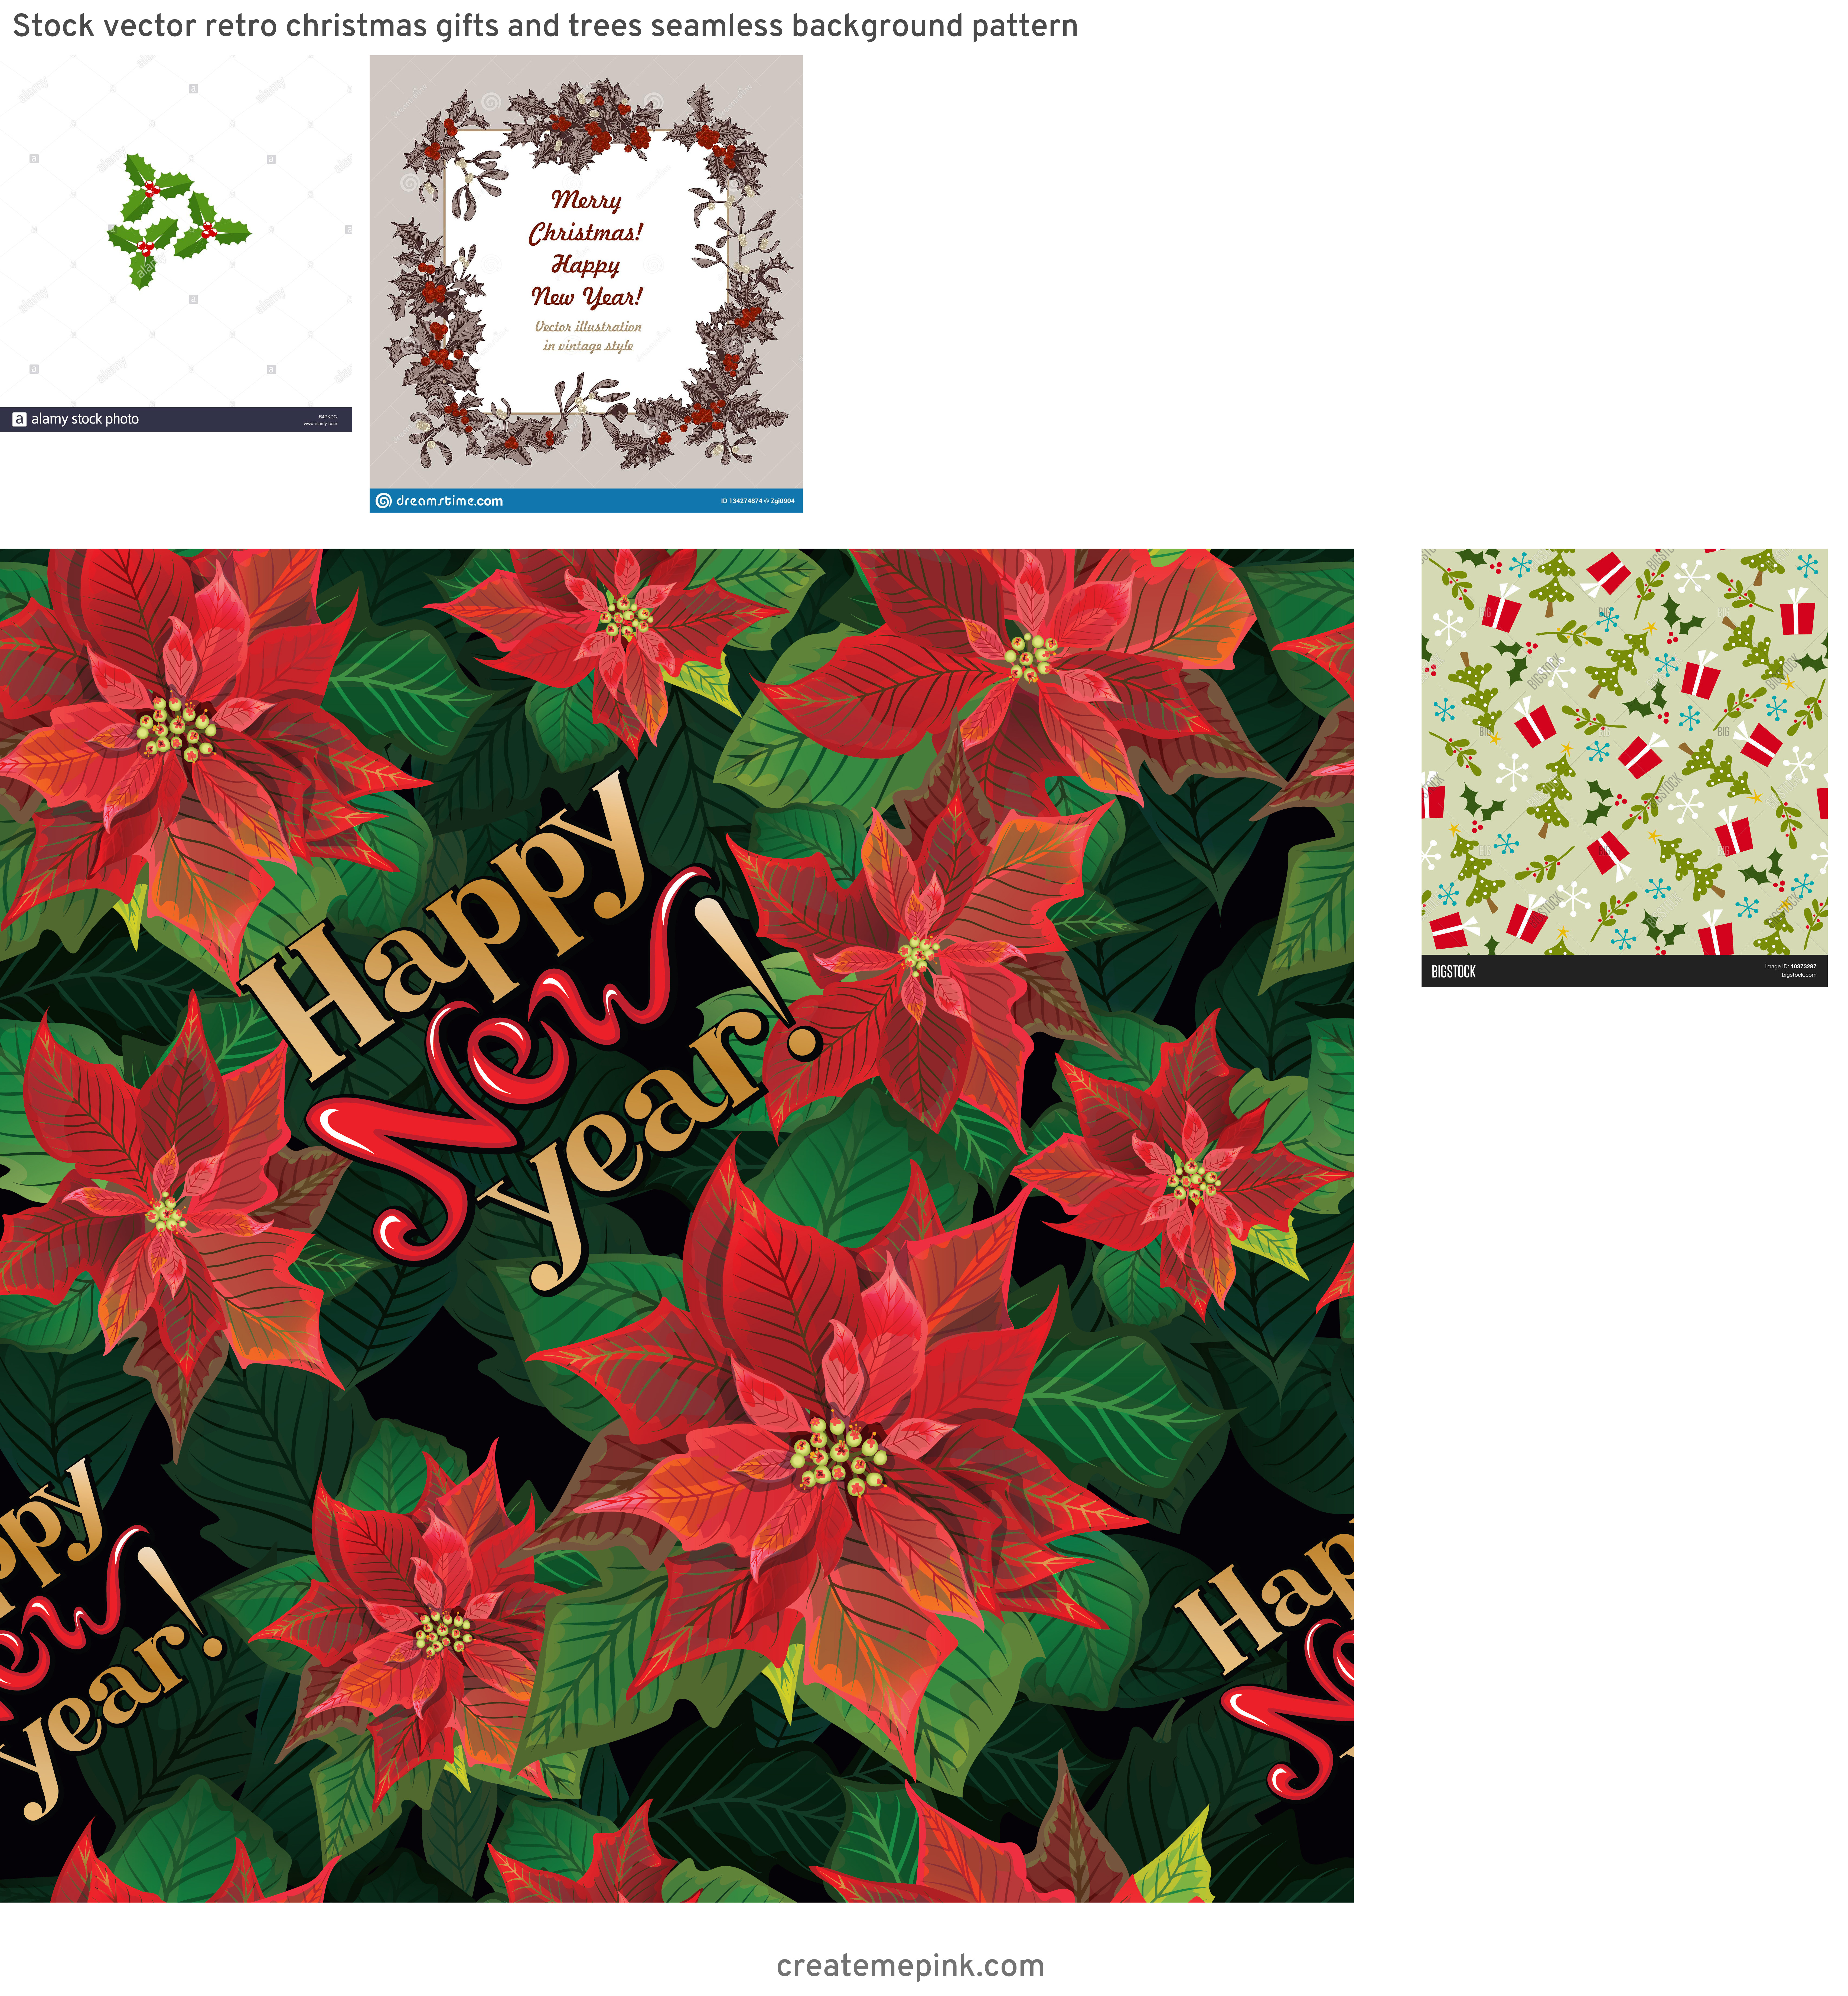 Vintage Look Holly Leaves Vector: Stock Vector Retro Christmas Gifts And Trees Seamless Background Pattern